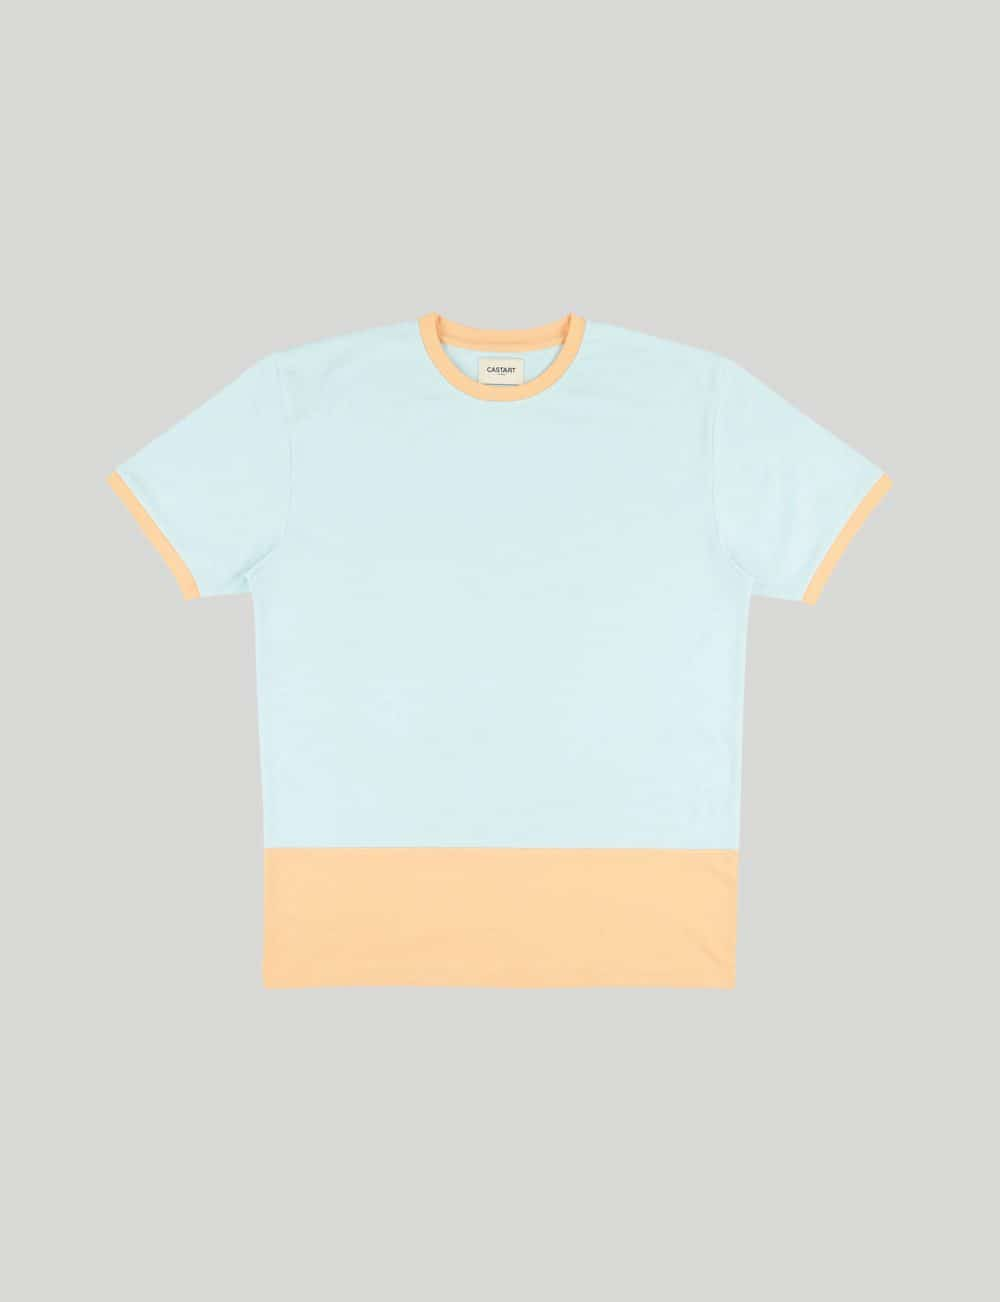 Castart - Bunny's Ear Tee - Light Blue